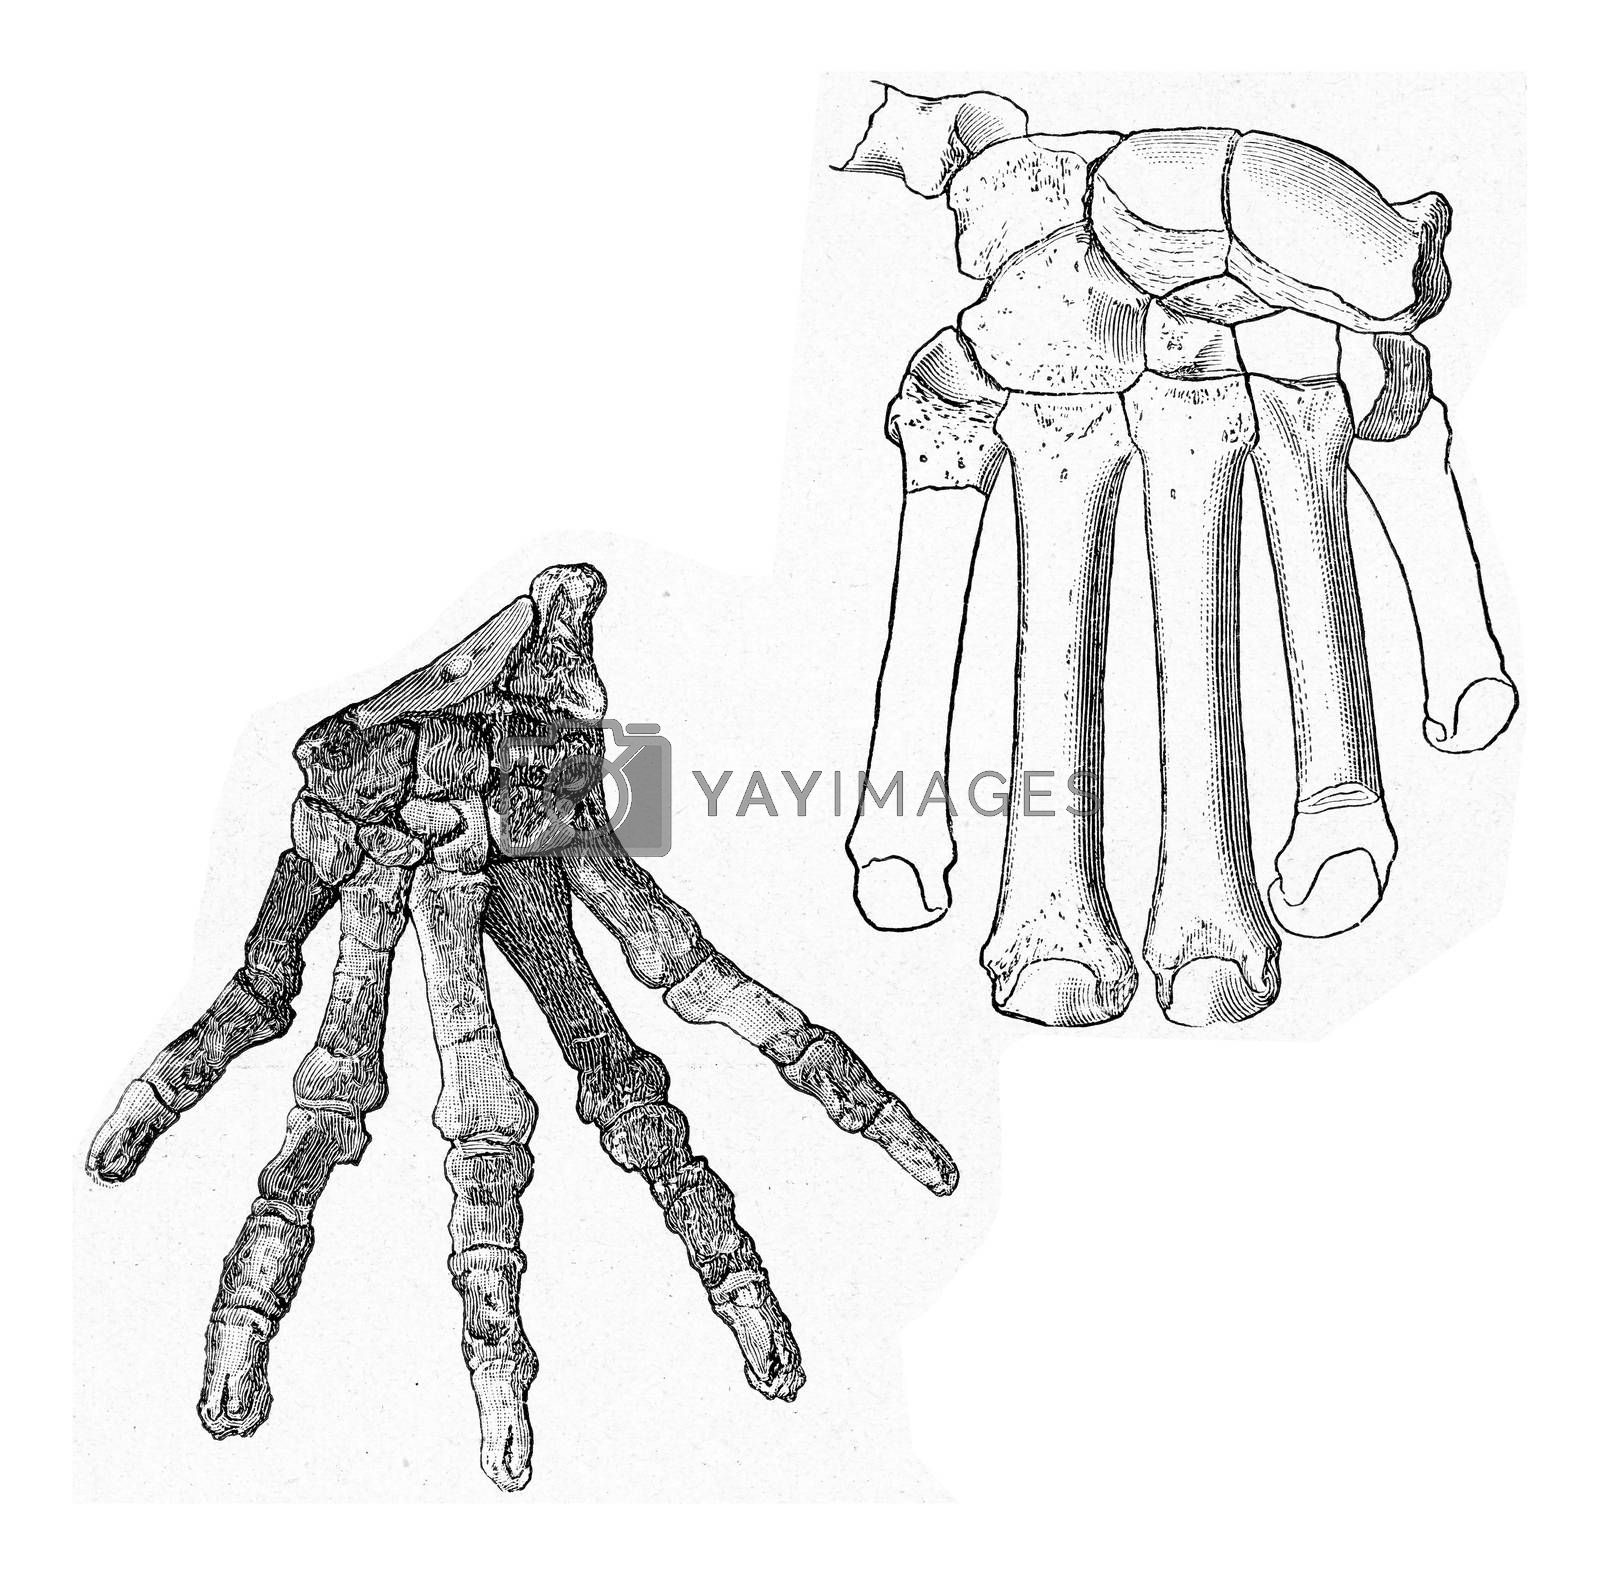 Skeletons of the hand of primitive carnivores of the tertiary era, vintage engraved illustration. From the Universe and Humanity, 1910.